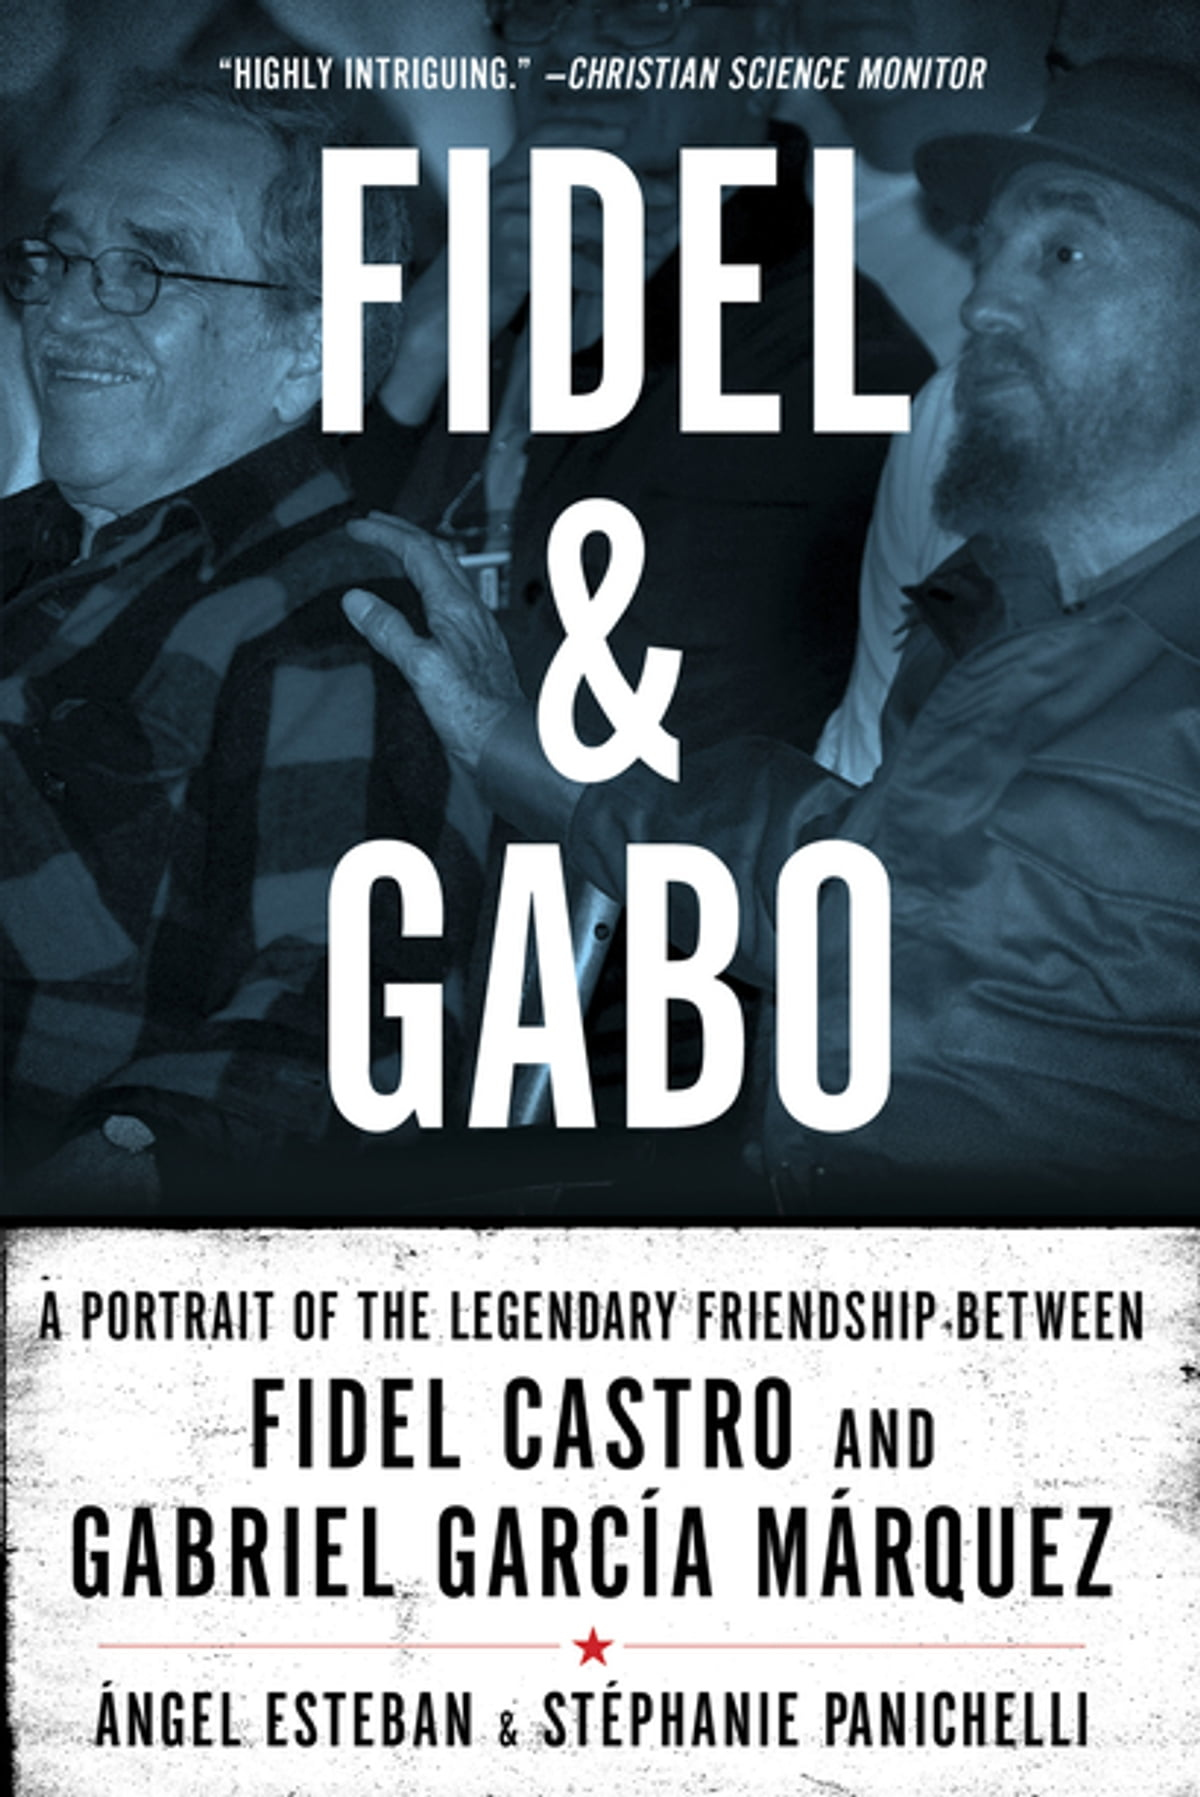 Fidel & Gabo: A Portrait of the Legendary Friendship Between Fidel Castro  and Gabriel Garcia Marquez ebook by Angel Esteban - Rakuten Kobo